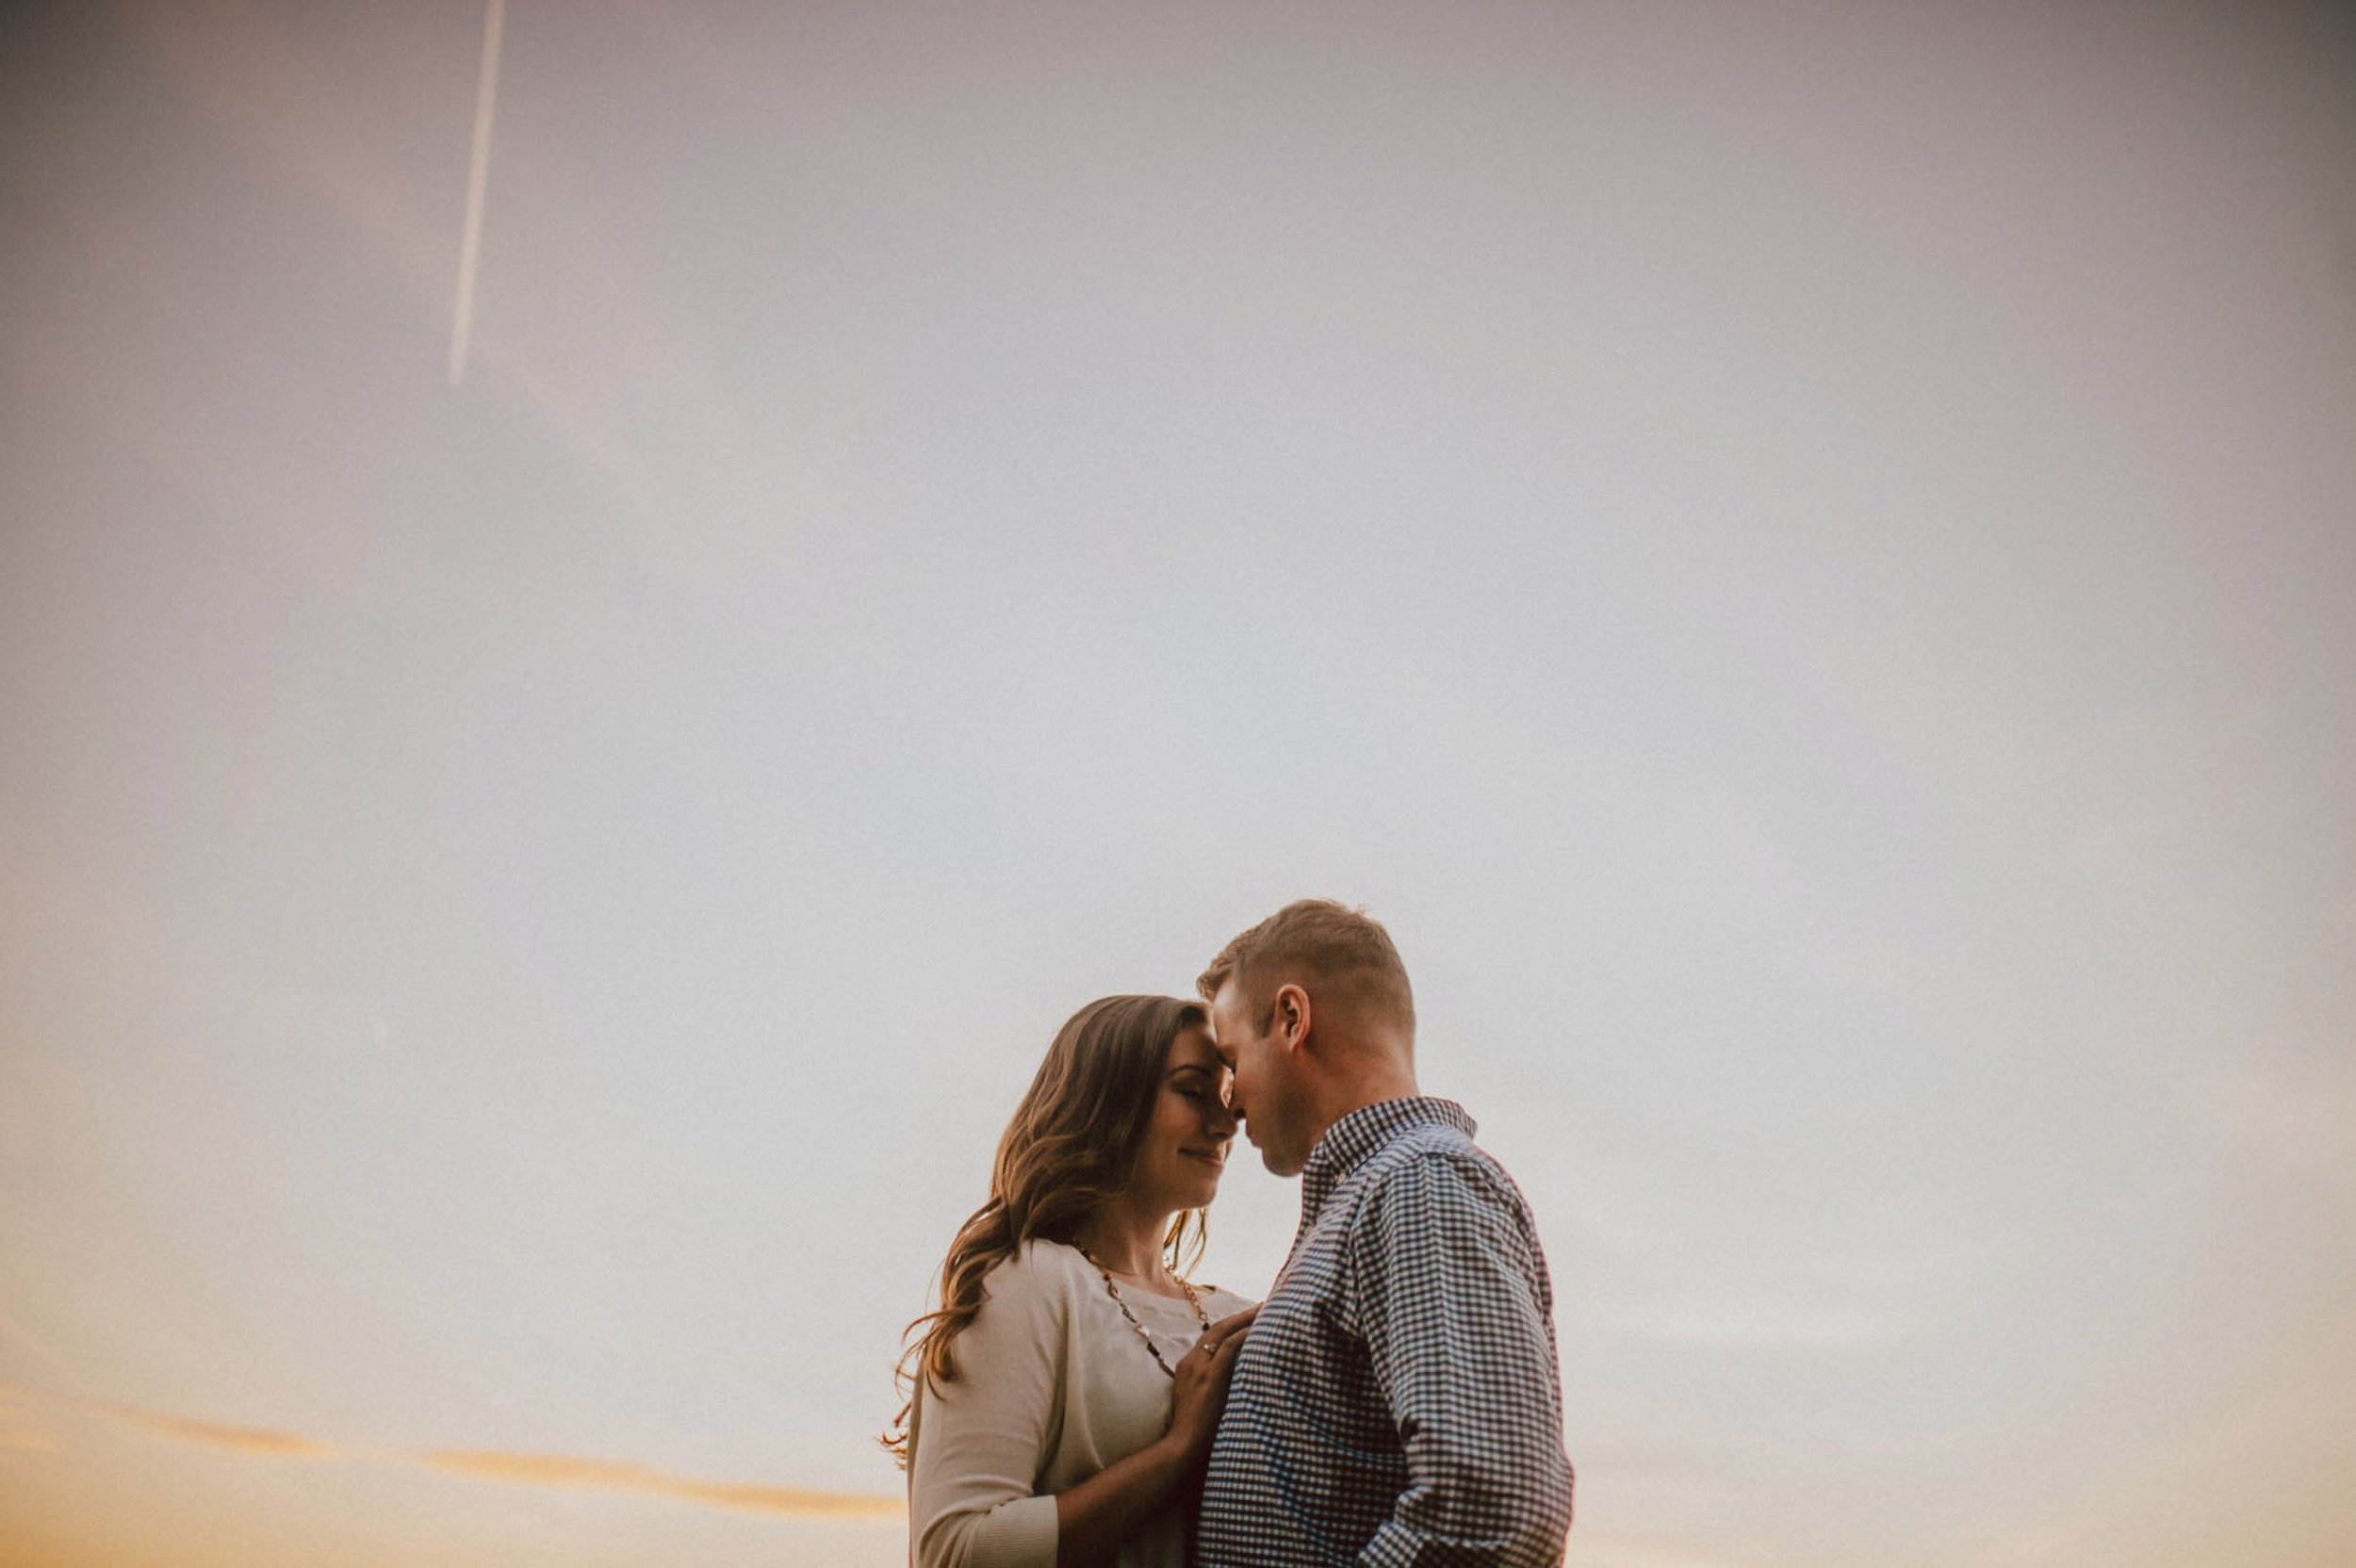 valley-forge-park-engagement-session-21.jpg